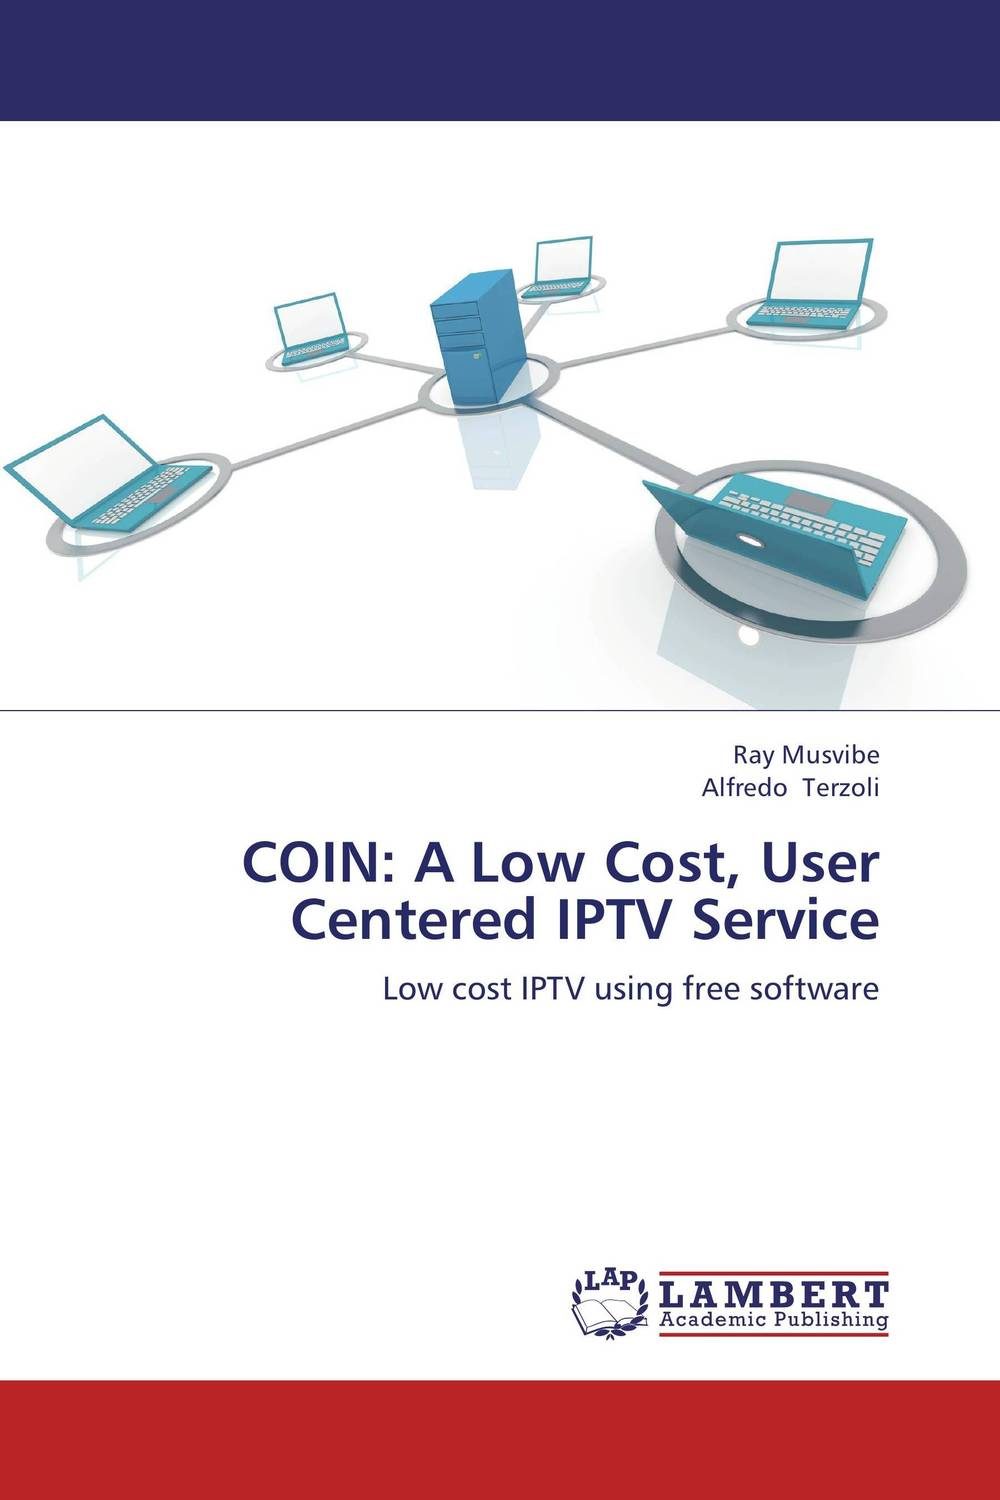 COIN: A Low Cost, User Centered IPTV Service coin a low cost user centered iptv service